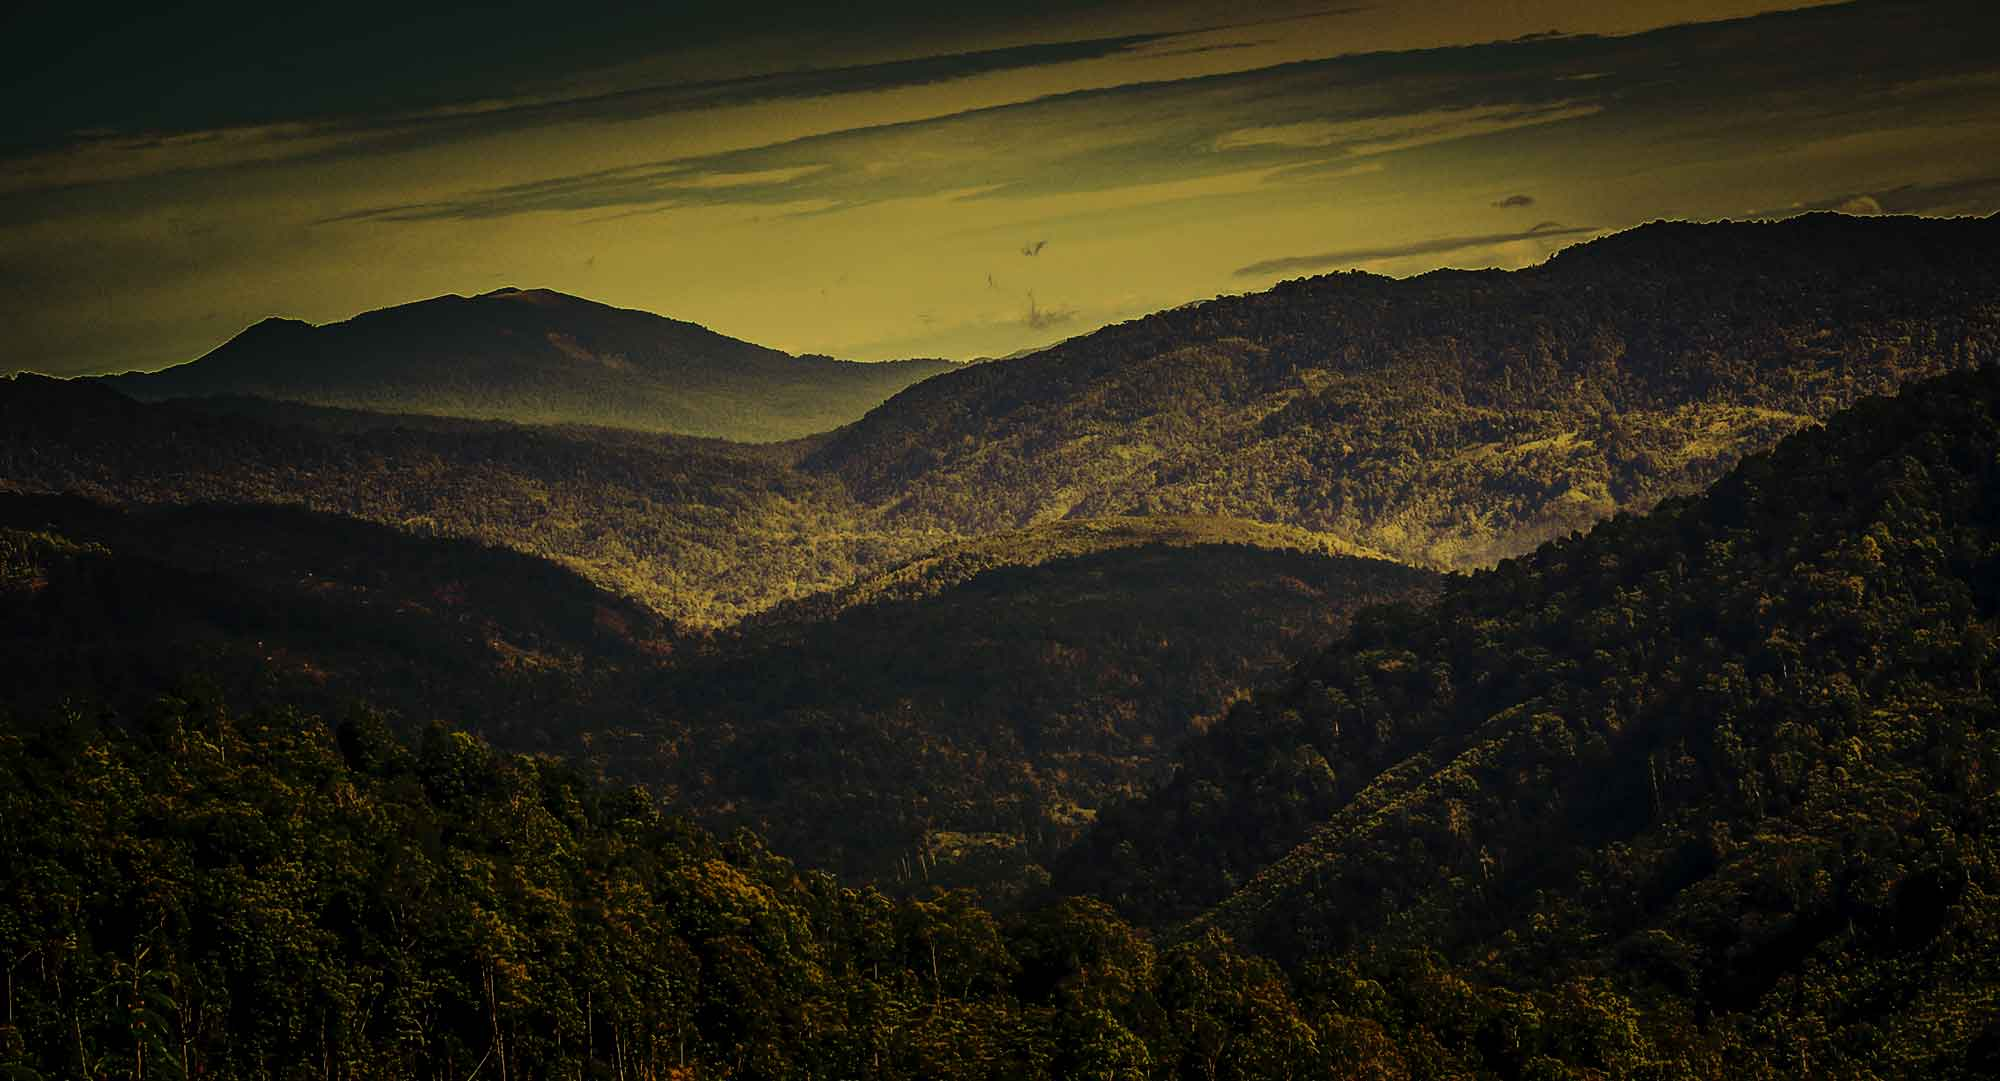 Highland-Mandailing;-photo-taken-from-Gibbon-Ridge-on-the-MEC-plantation